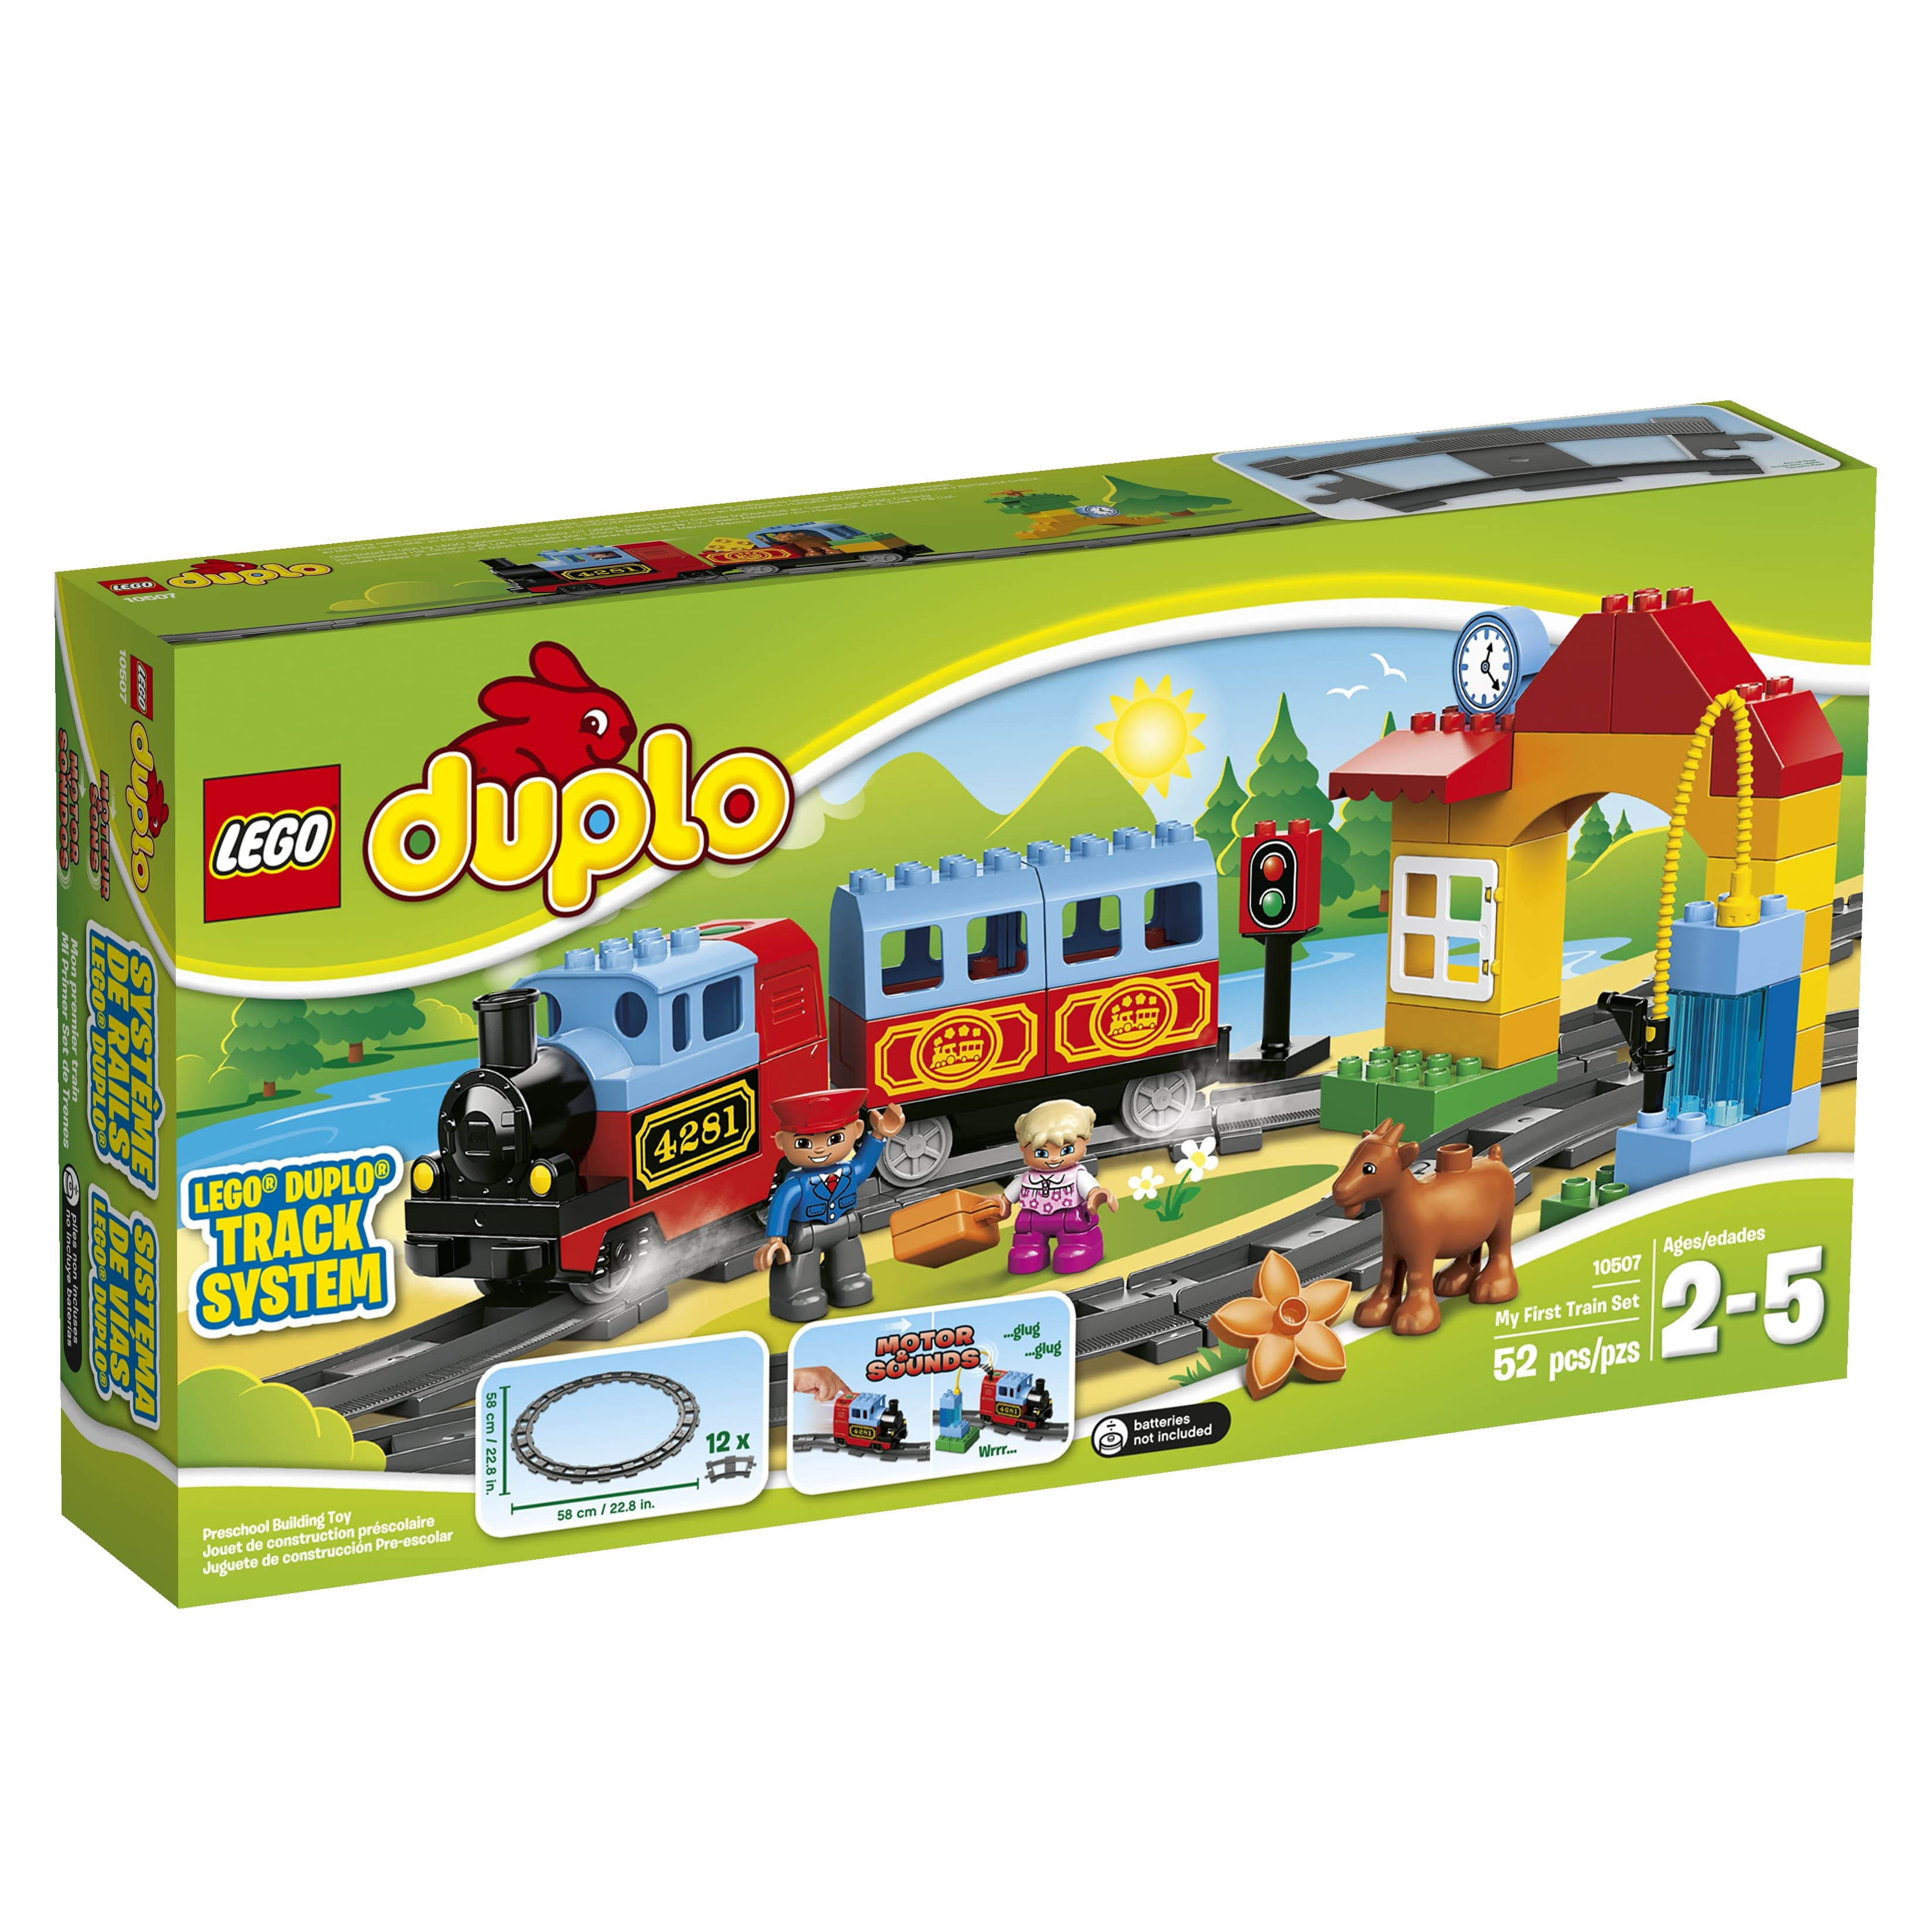 Amazon and Walmart Lego Duplo My First Train Set for $29.48 or town airport for $13.19 or my first farm for $12.39 and more